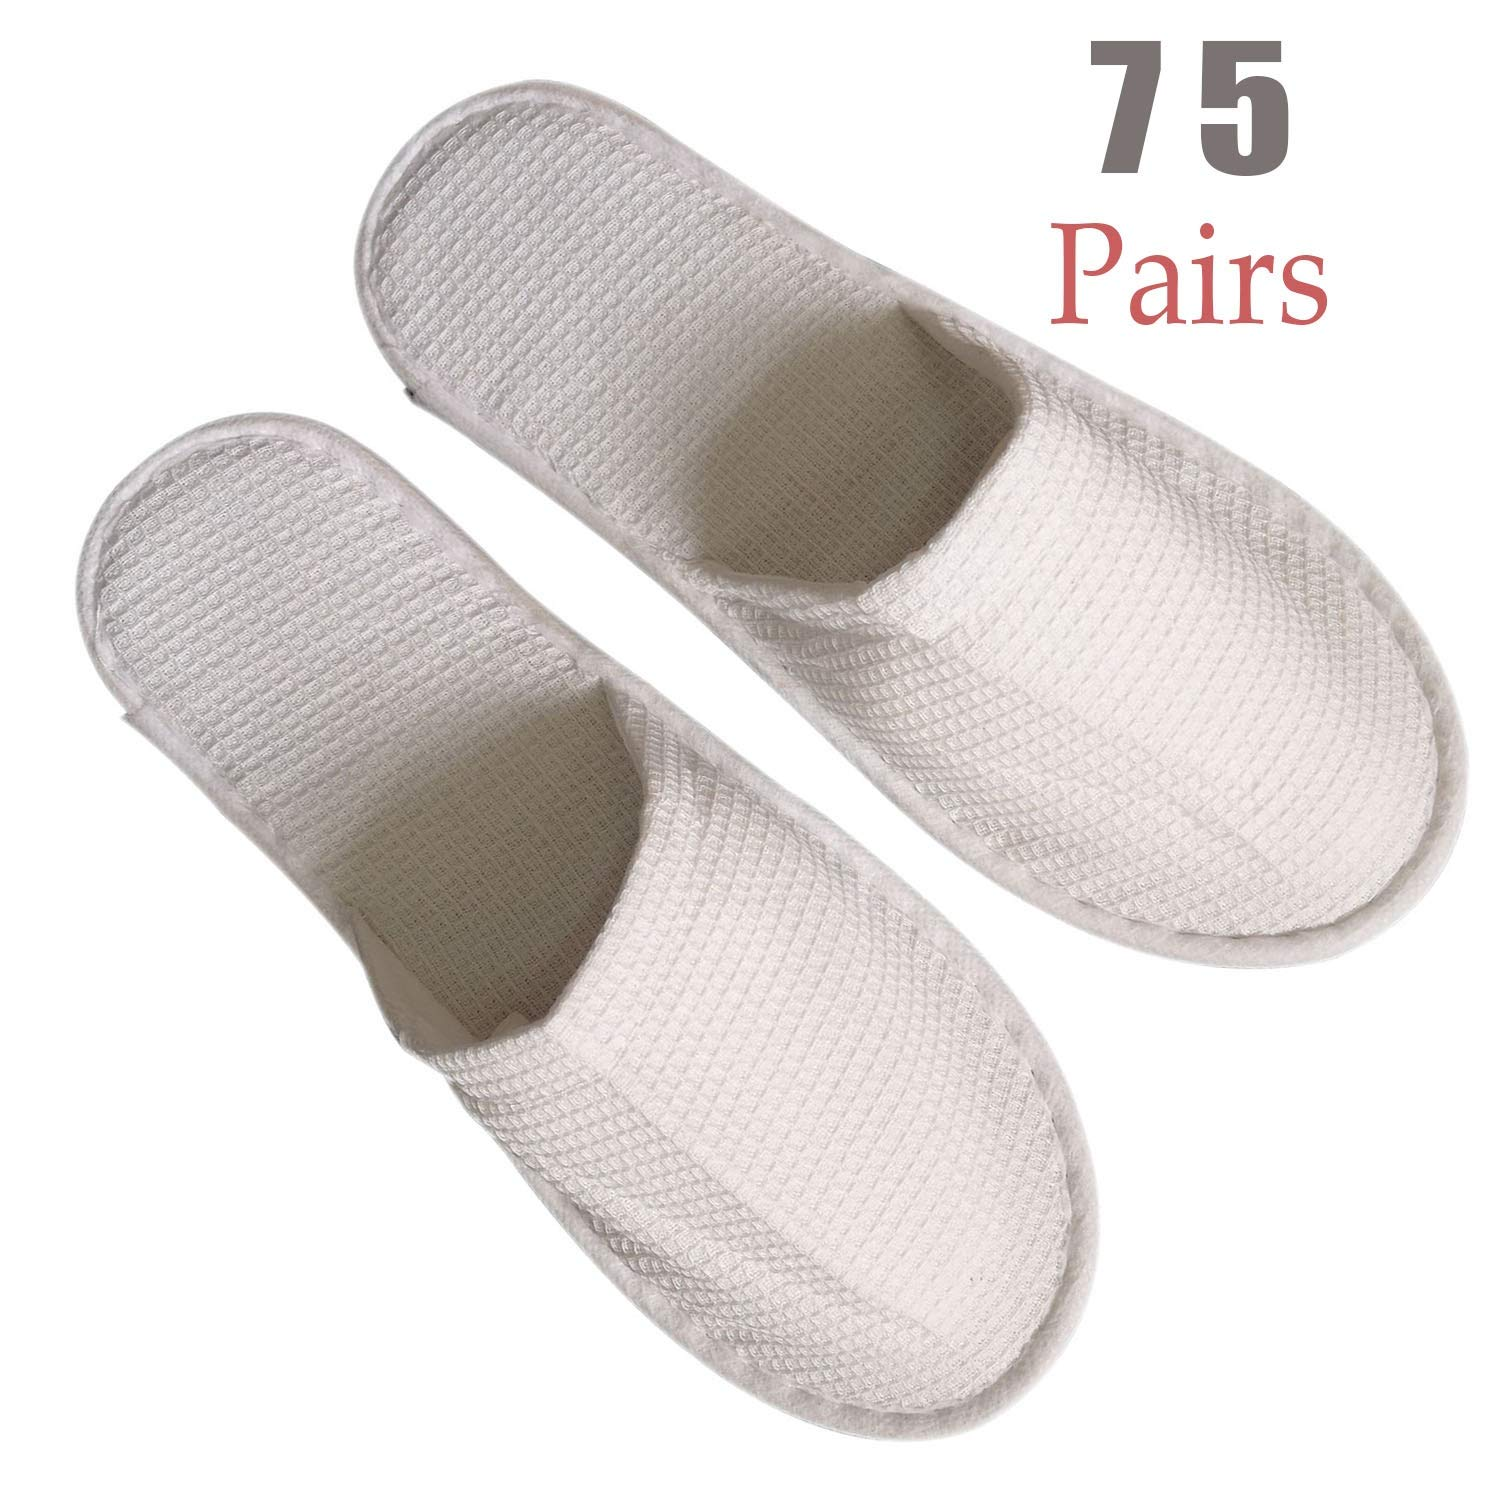 Waffle 75 Pairs Slippers Women and Men Disposable Portable Slippers, Women Slipper Hotel Disposable Spa Slippers Men Portable Comfortable Non-Slip Sole One Size Fit Most Men and Women Spa-